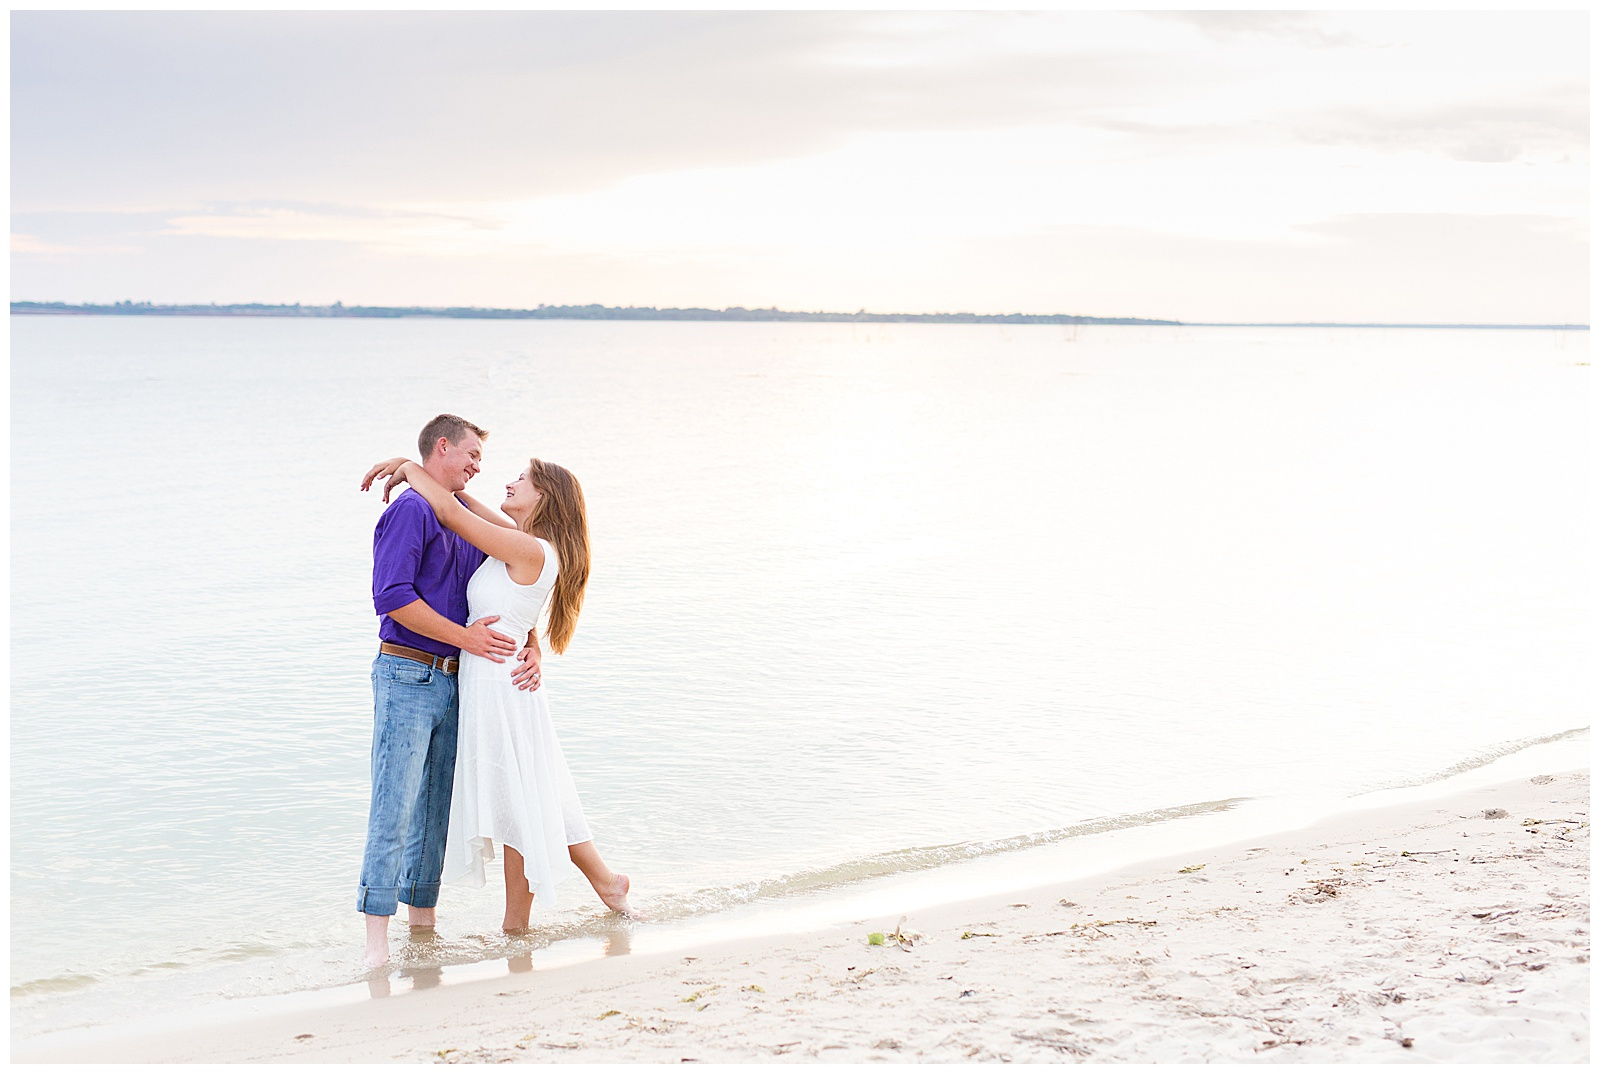 Canton Lake Engagement Session_Braden + Olivia_Oklahoma Wedding and Engagement Photographer_0008